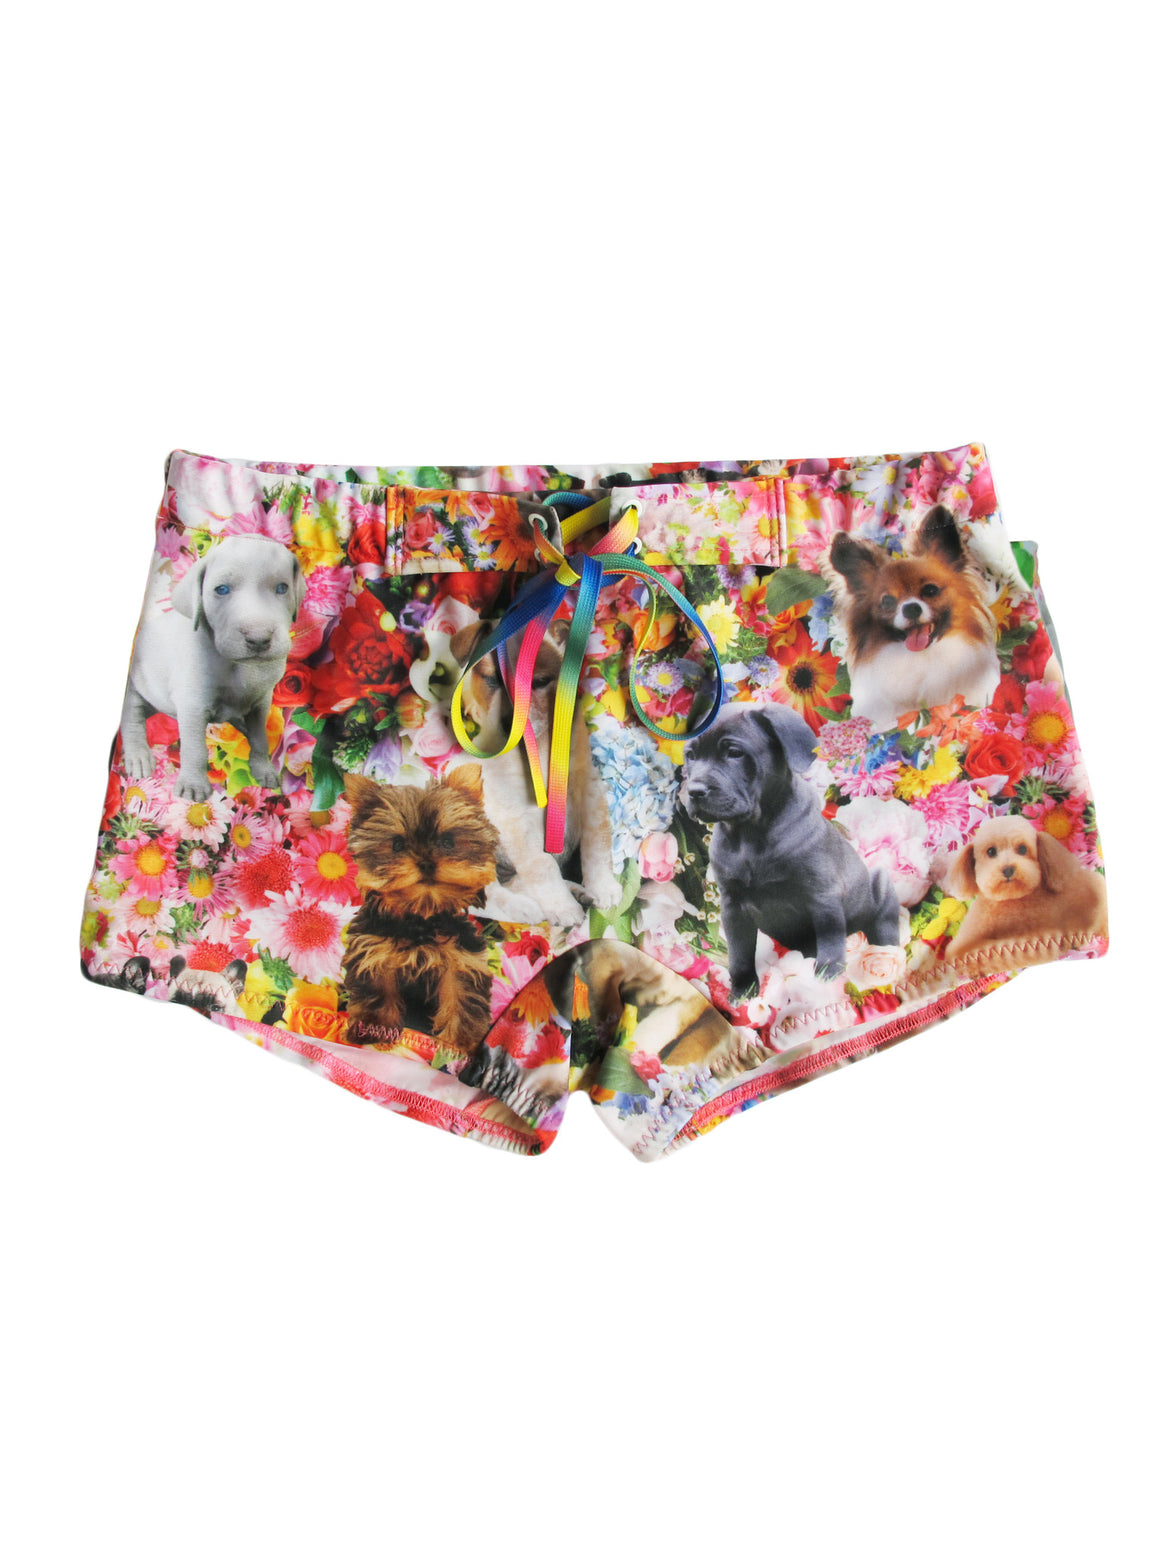 Puppy Swim Trunk